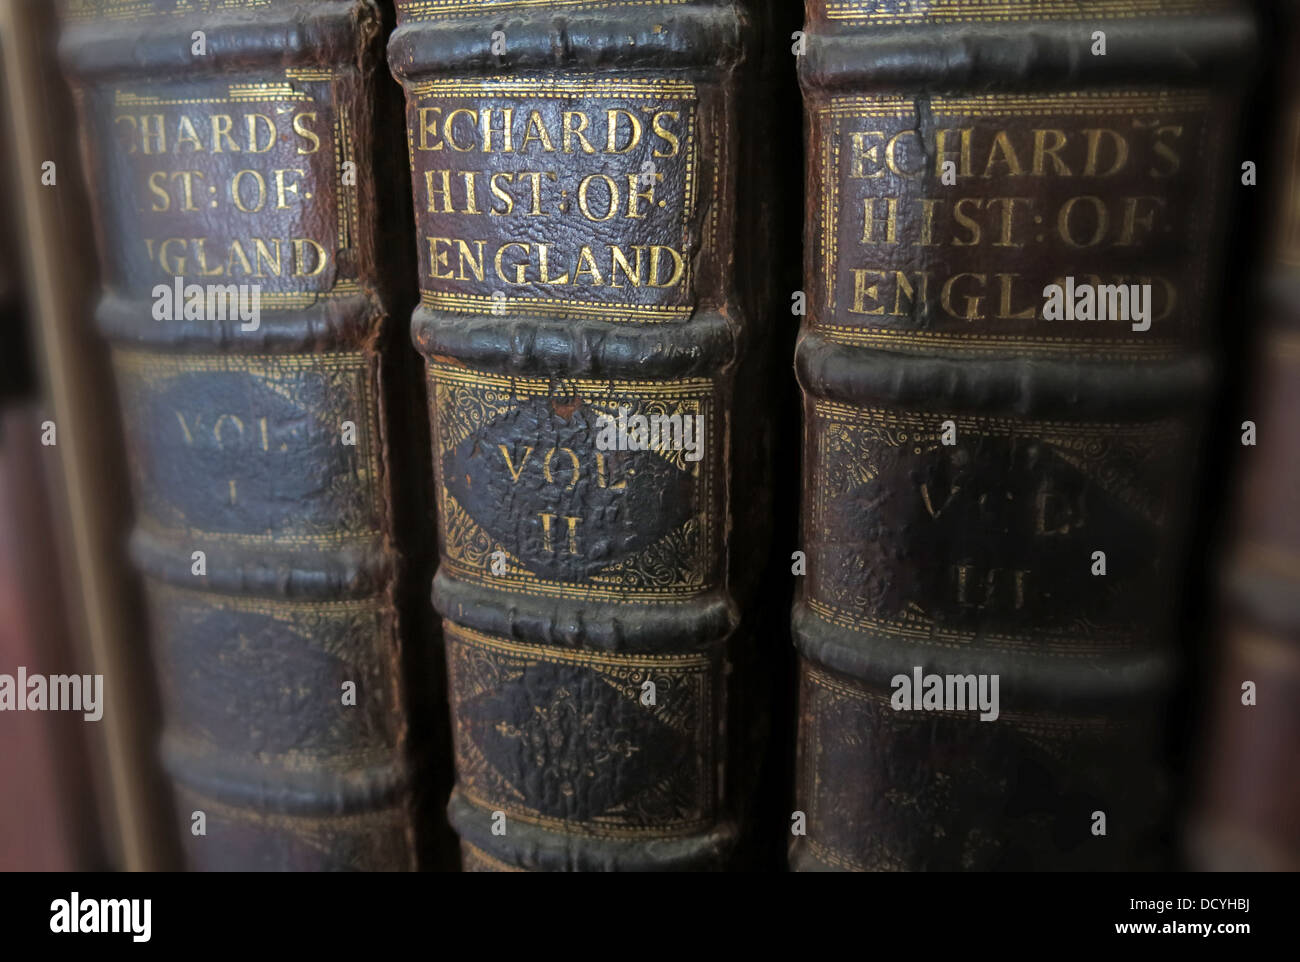 Antique & old Books, Echards History of England, Vol1, VolII,VolIII, Stock Photo